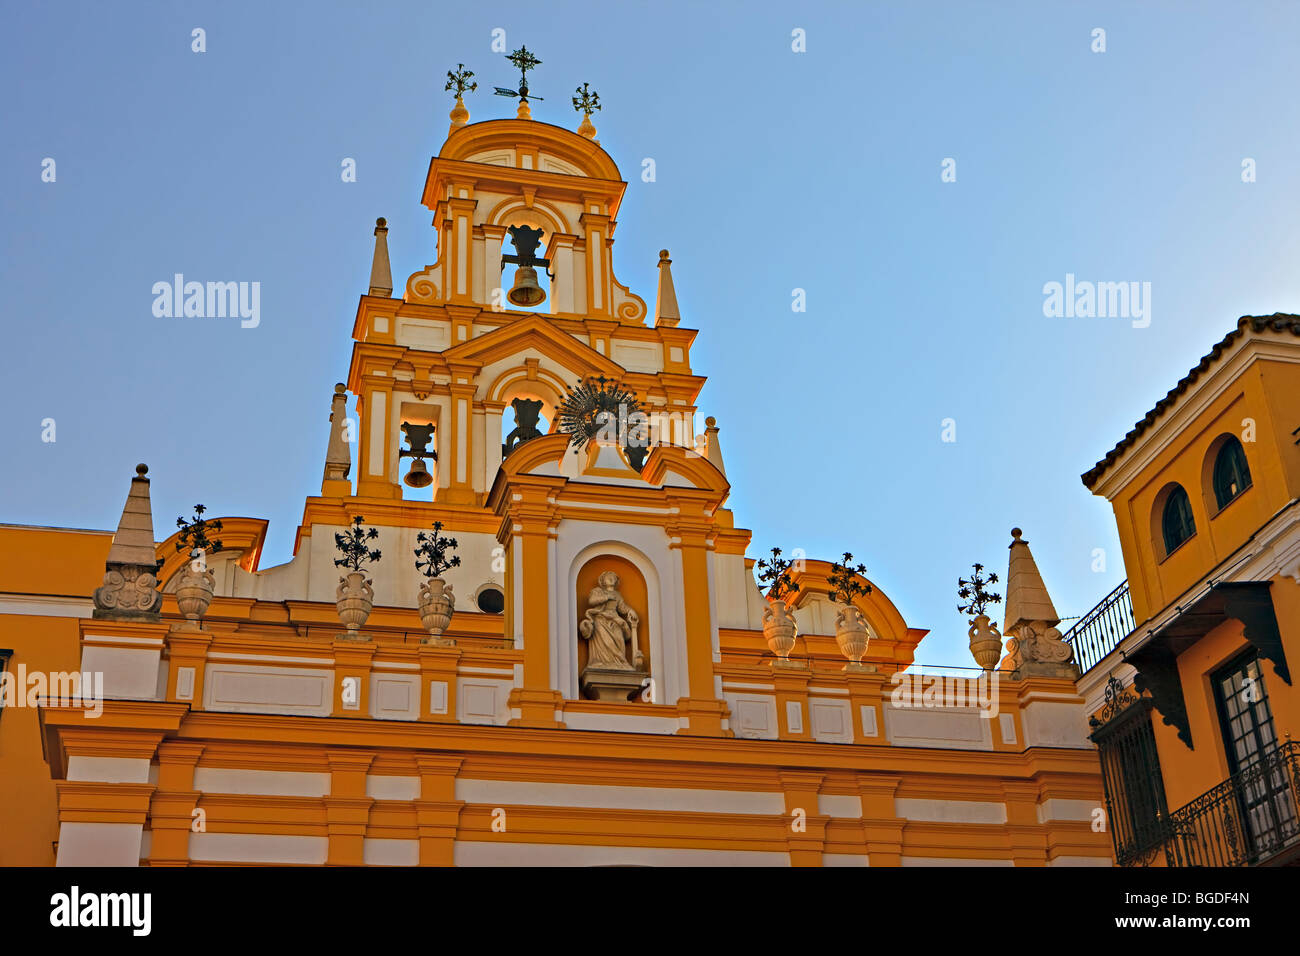 Basilica de la Macarena in the Macarena district, City of Sevilla (Seville), Province of Sevilla, Andalusia (Andalucia), - Stock Image